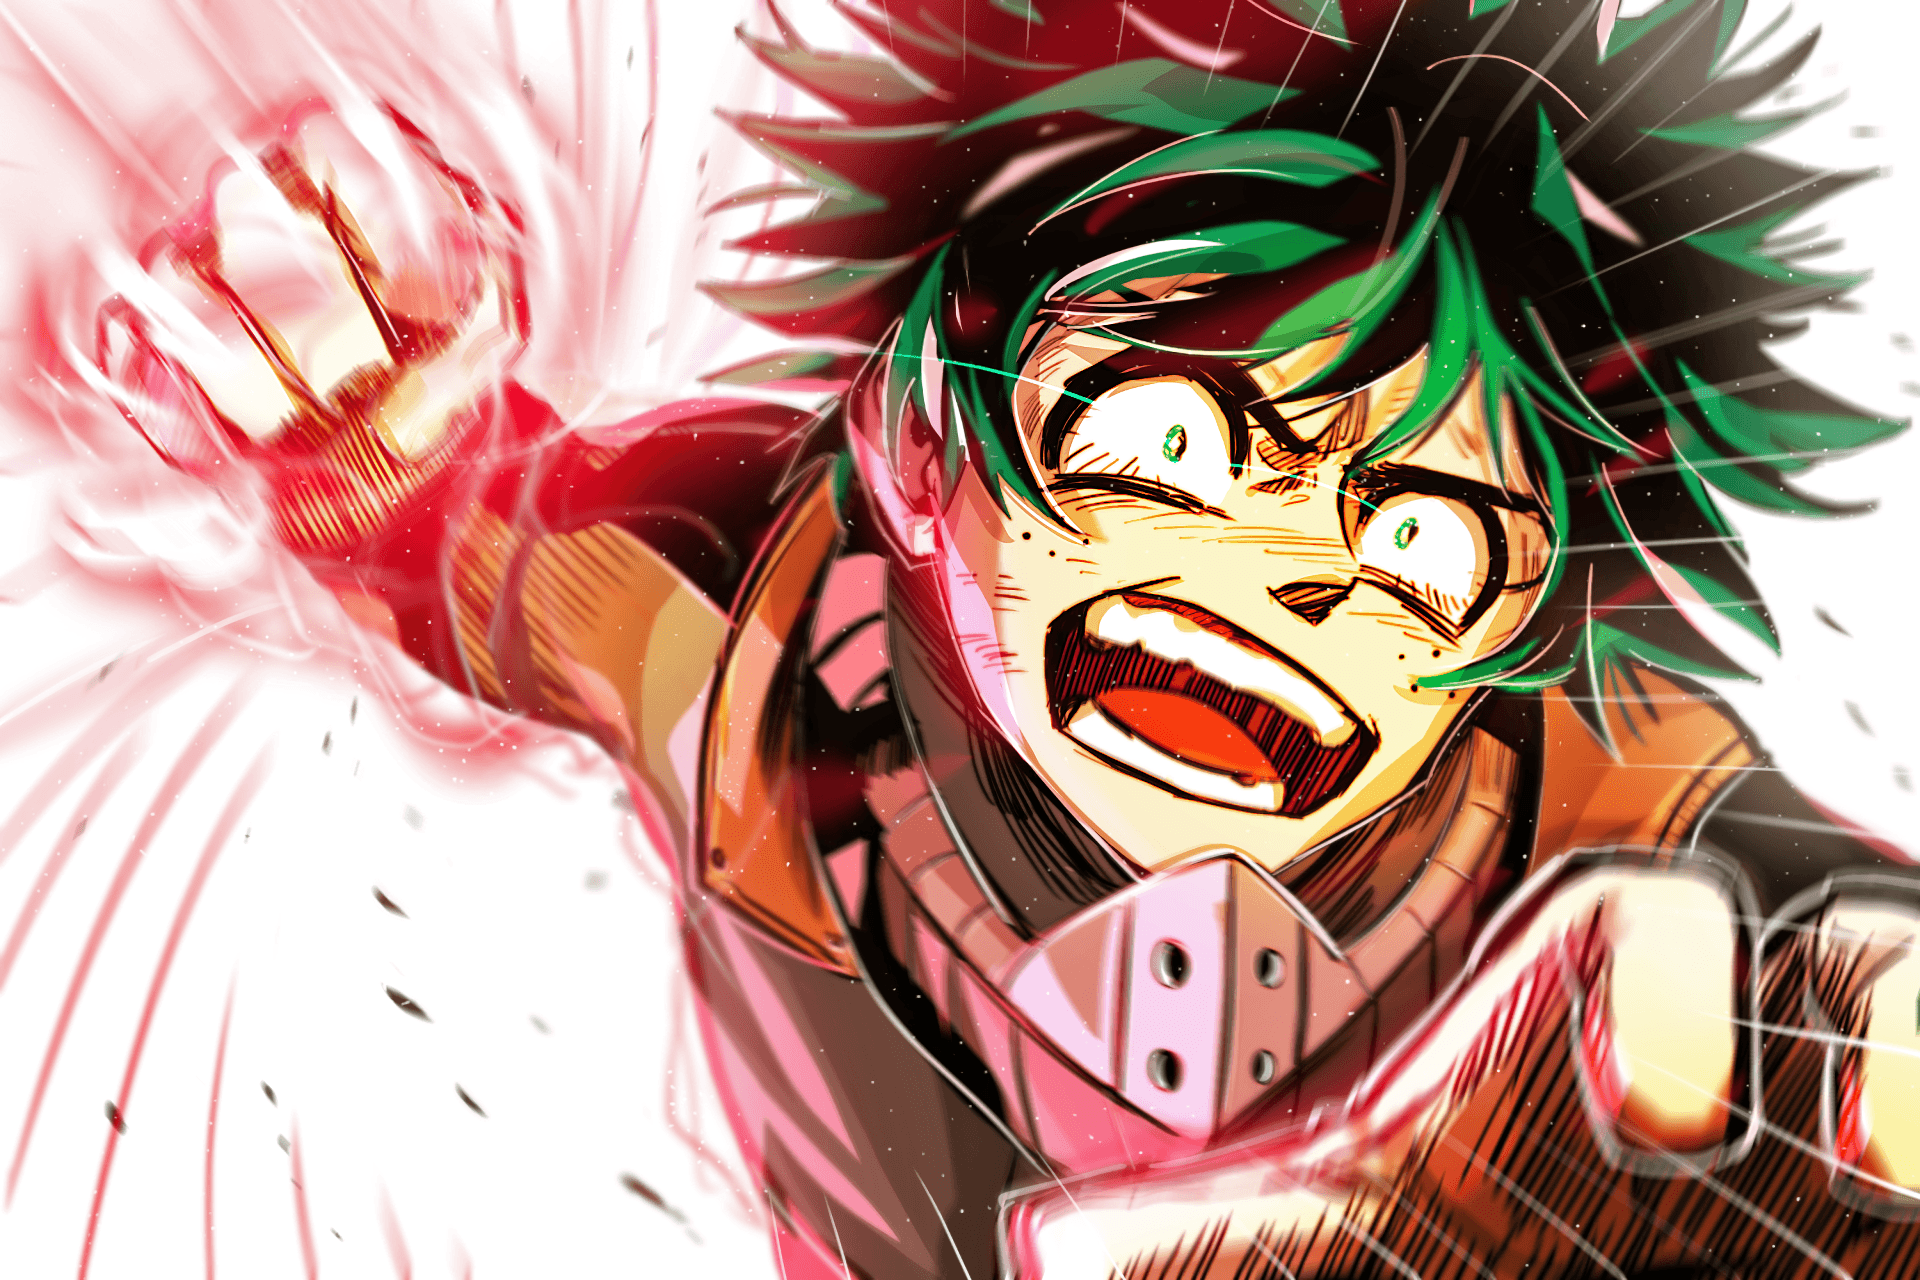 You can also upload and share your favorite boku no hero academia wallpapers. Boku No Hero Wallpapers - Wallpaper Cave